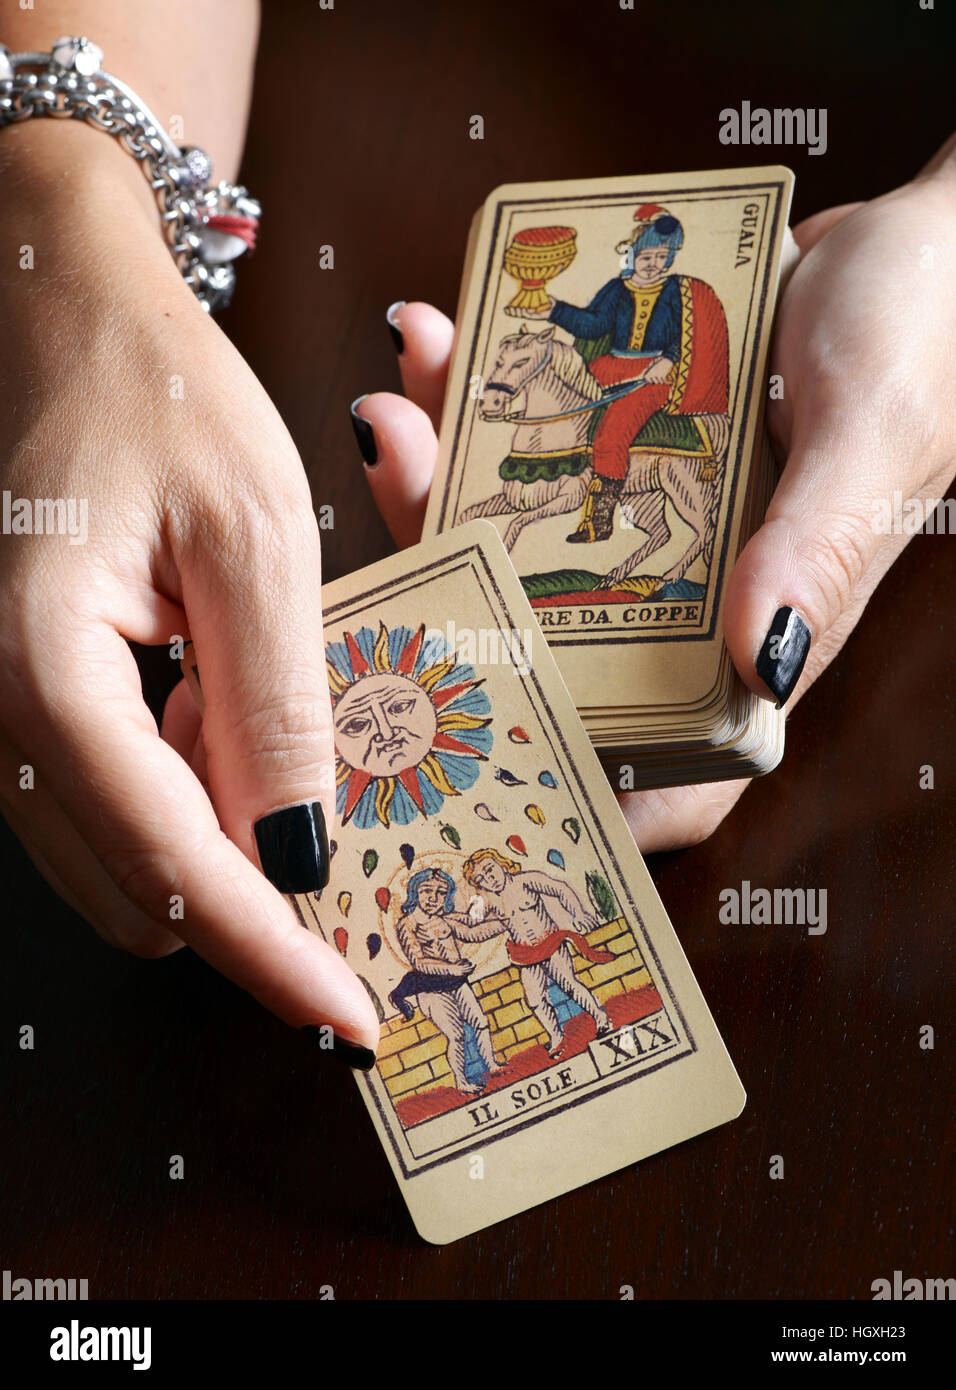 Close up view female hands with black nail art and bracelet showing old tarot card and card deck over dark table - Stock Image